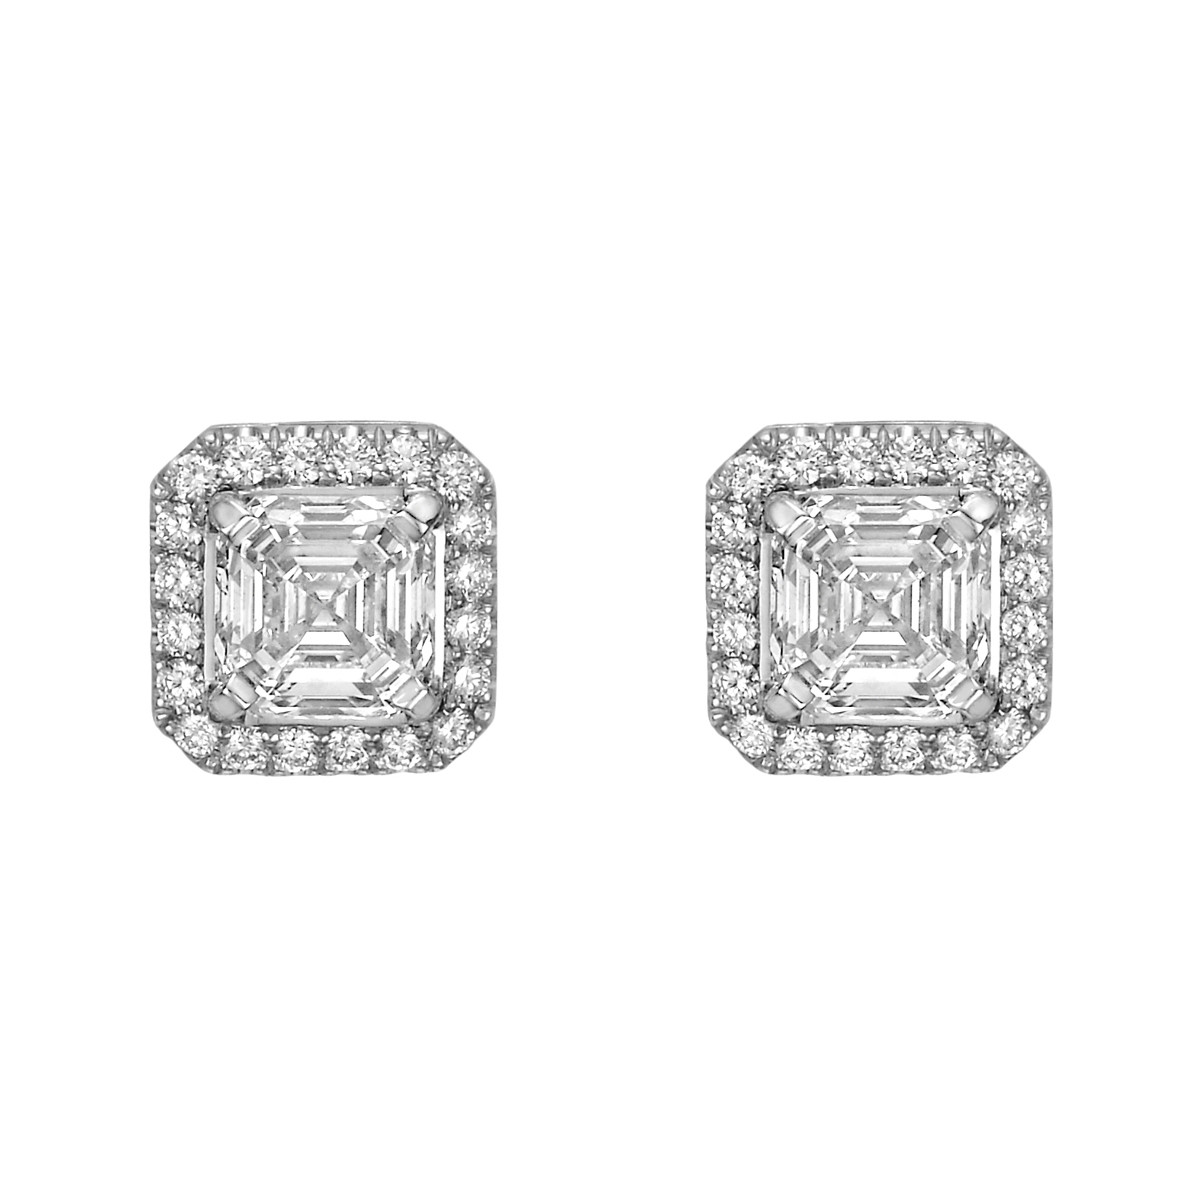 cut s com jewelry dp princess stud amazon cz square men no silver diamond piercing real earrings magnetic